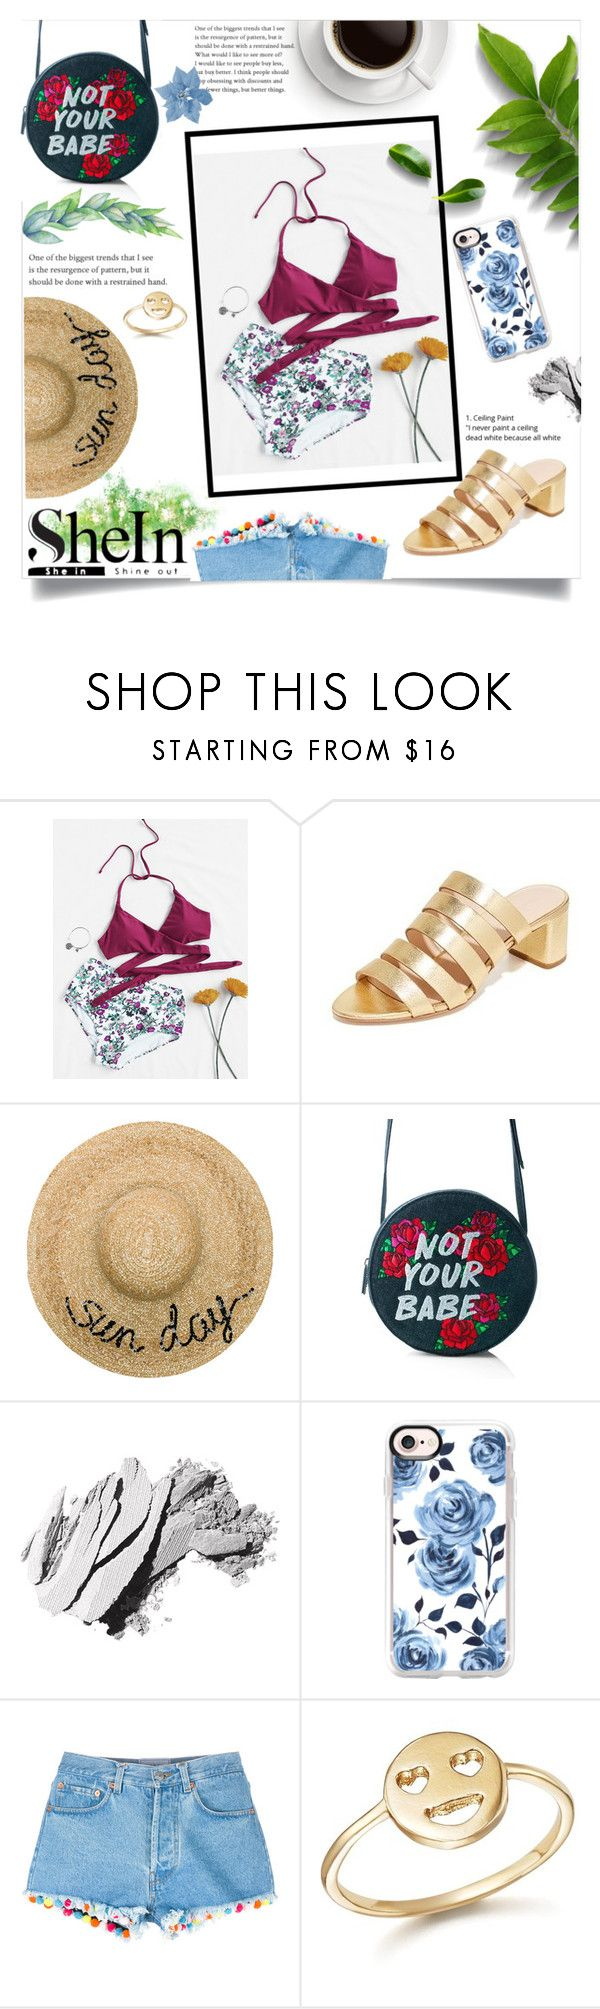 """WIN SHEIN $30 COUPON"" by emmaarnfred on Polyvore featuring Loeffler Randall, Eugenia Kim, Skinnydip, Bobbi Brown Cosmetics, Casetify, Forte Forte and Bing Bang"